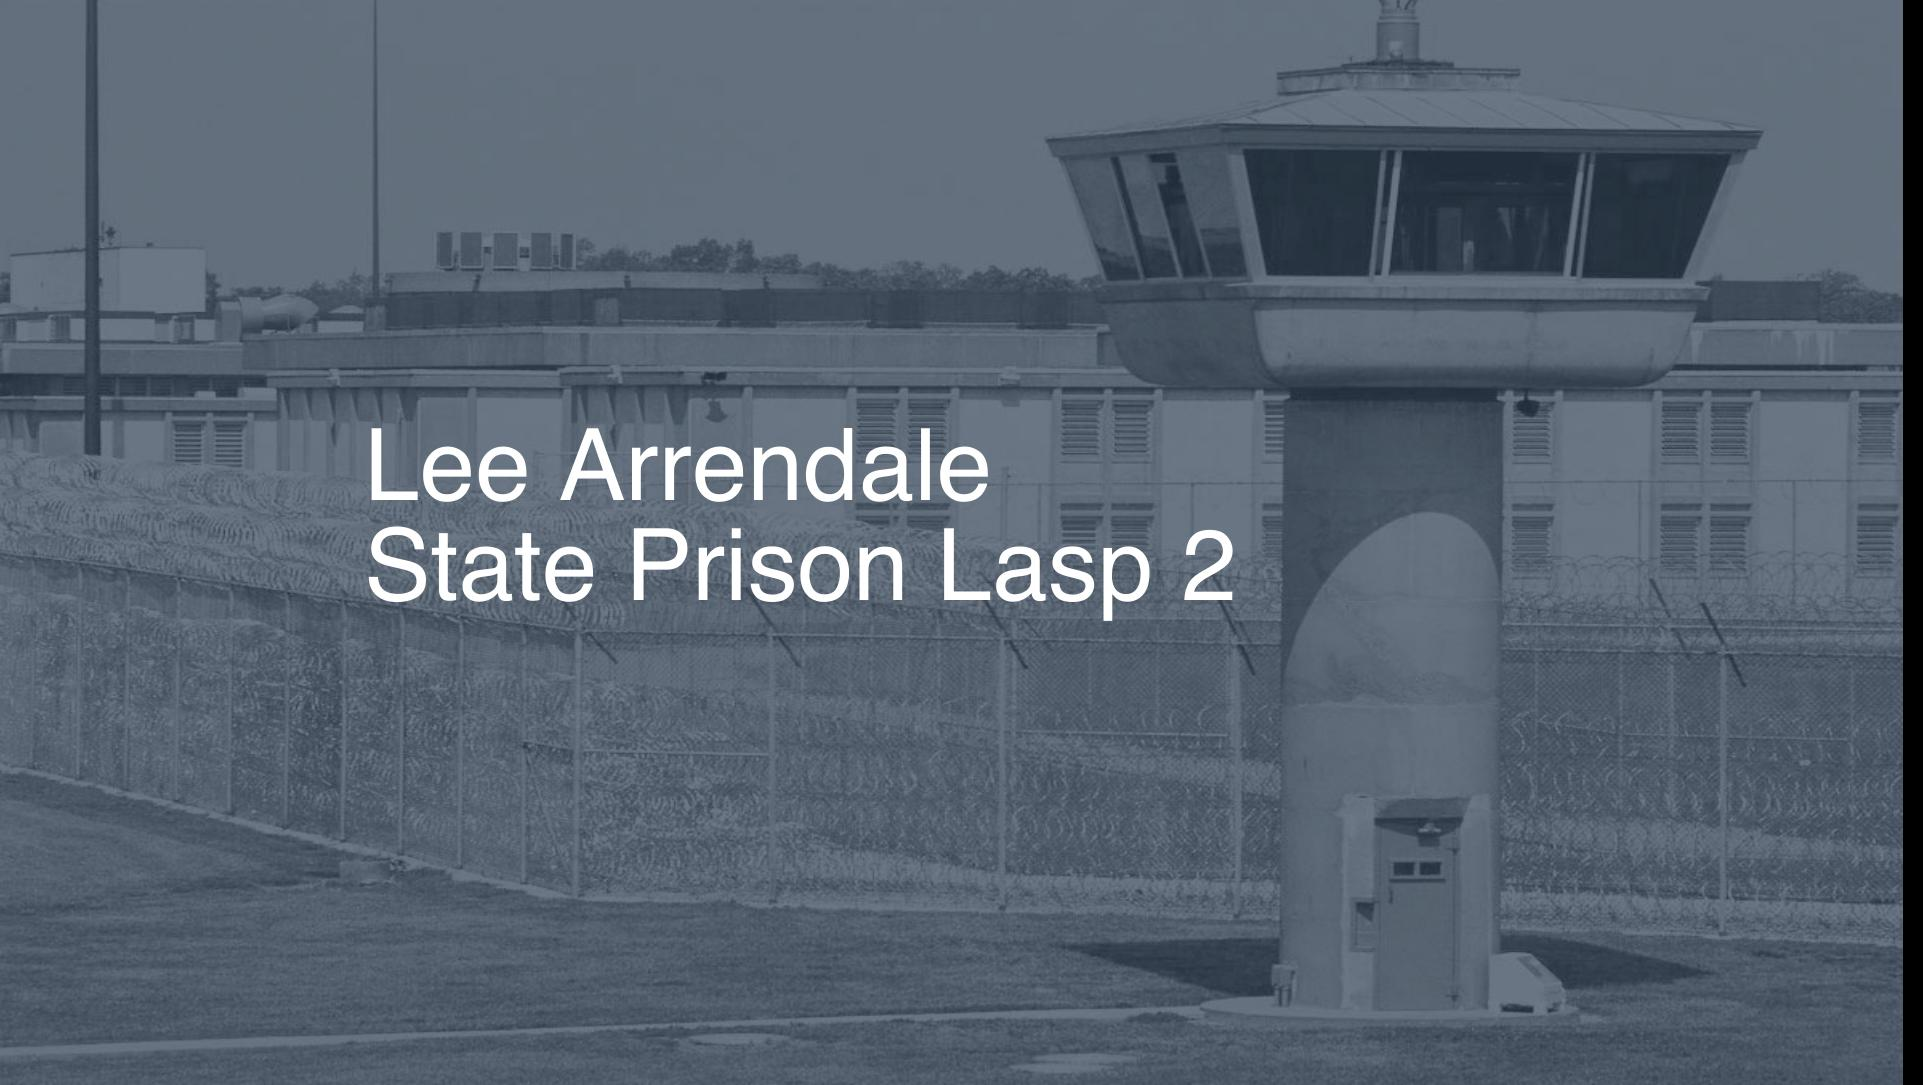 Lee Arrendale State Prison (LASP) Inmate Search, Lookup & Services